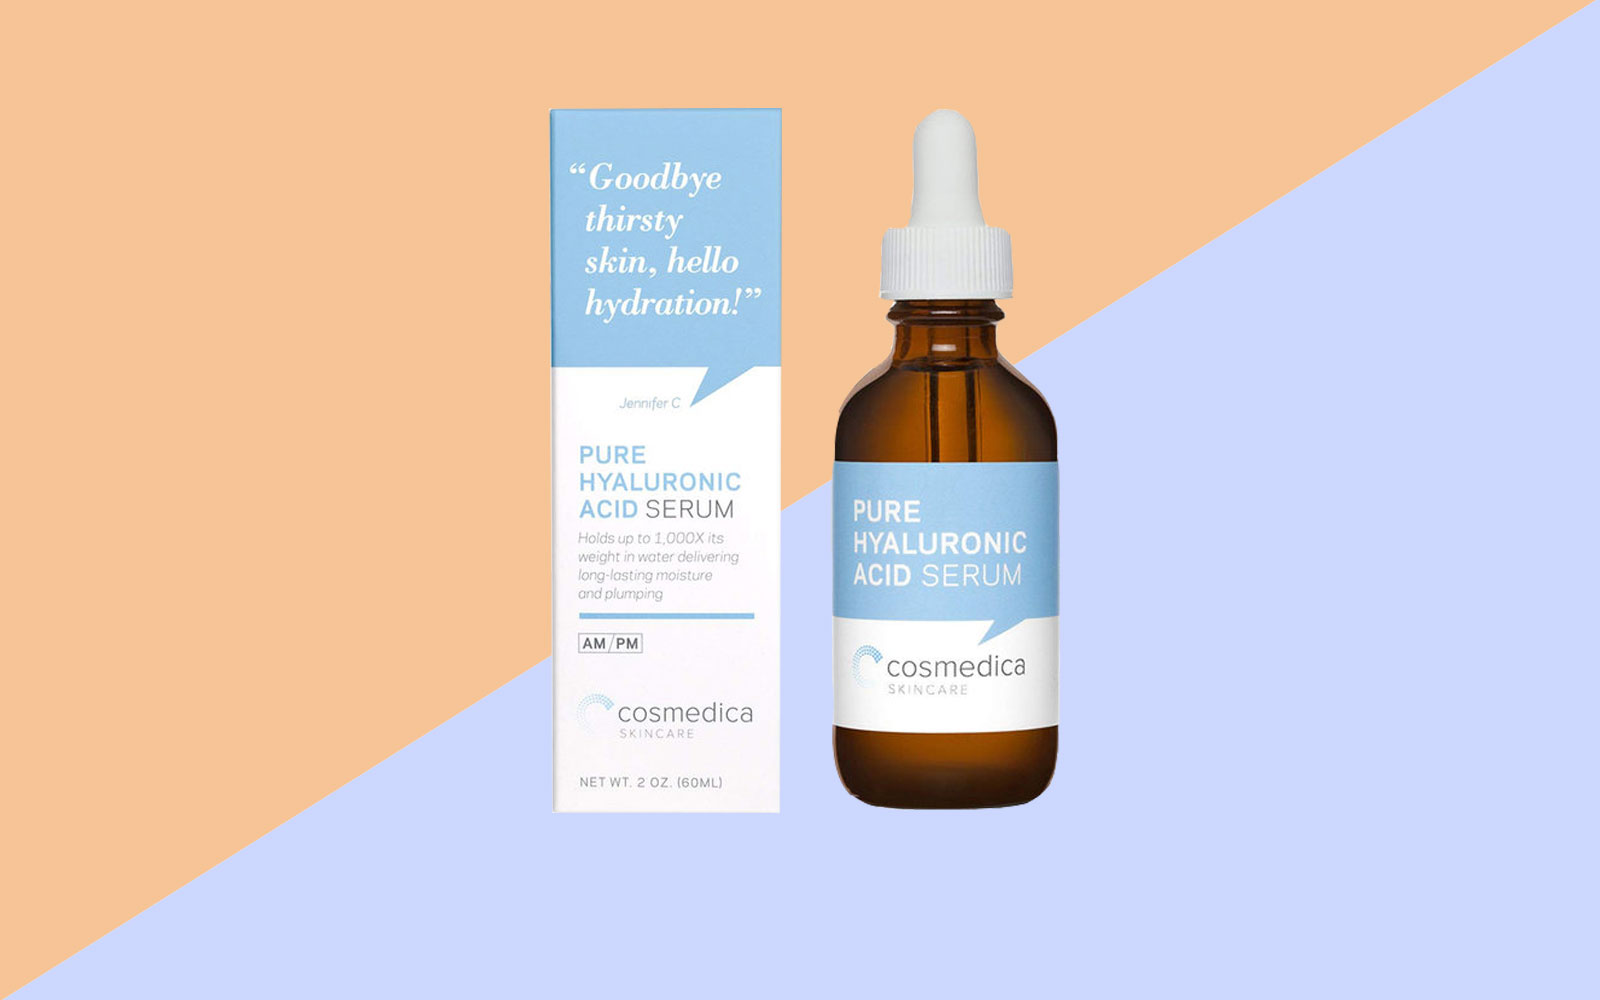 Cosmedica's Hyaluronic Acid Serum